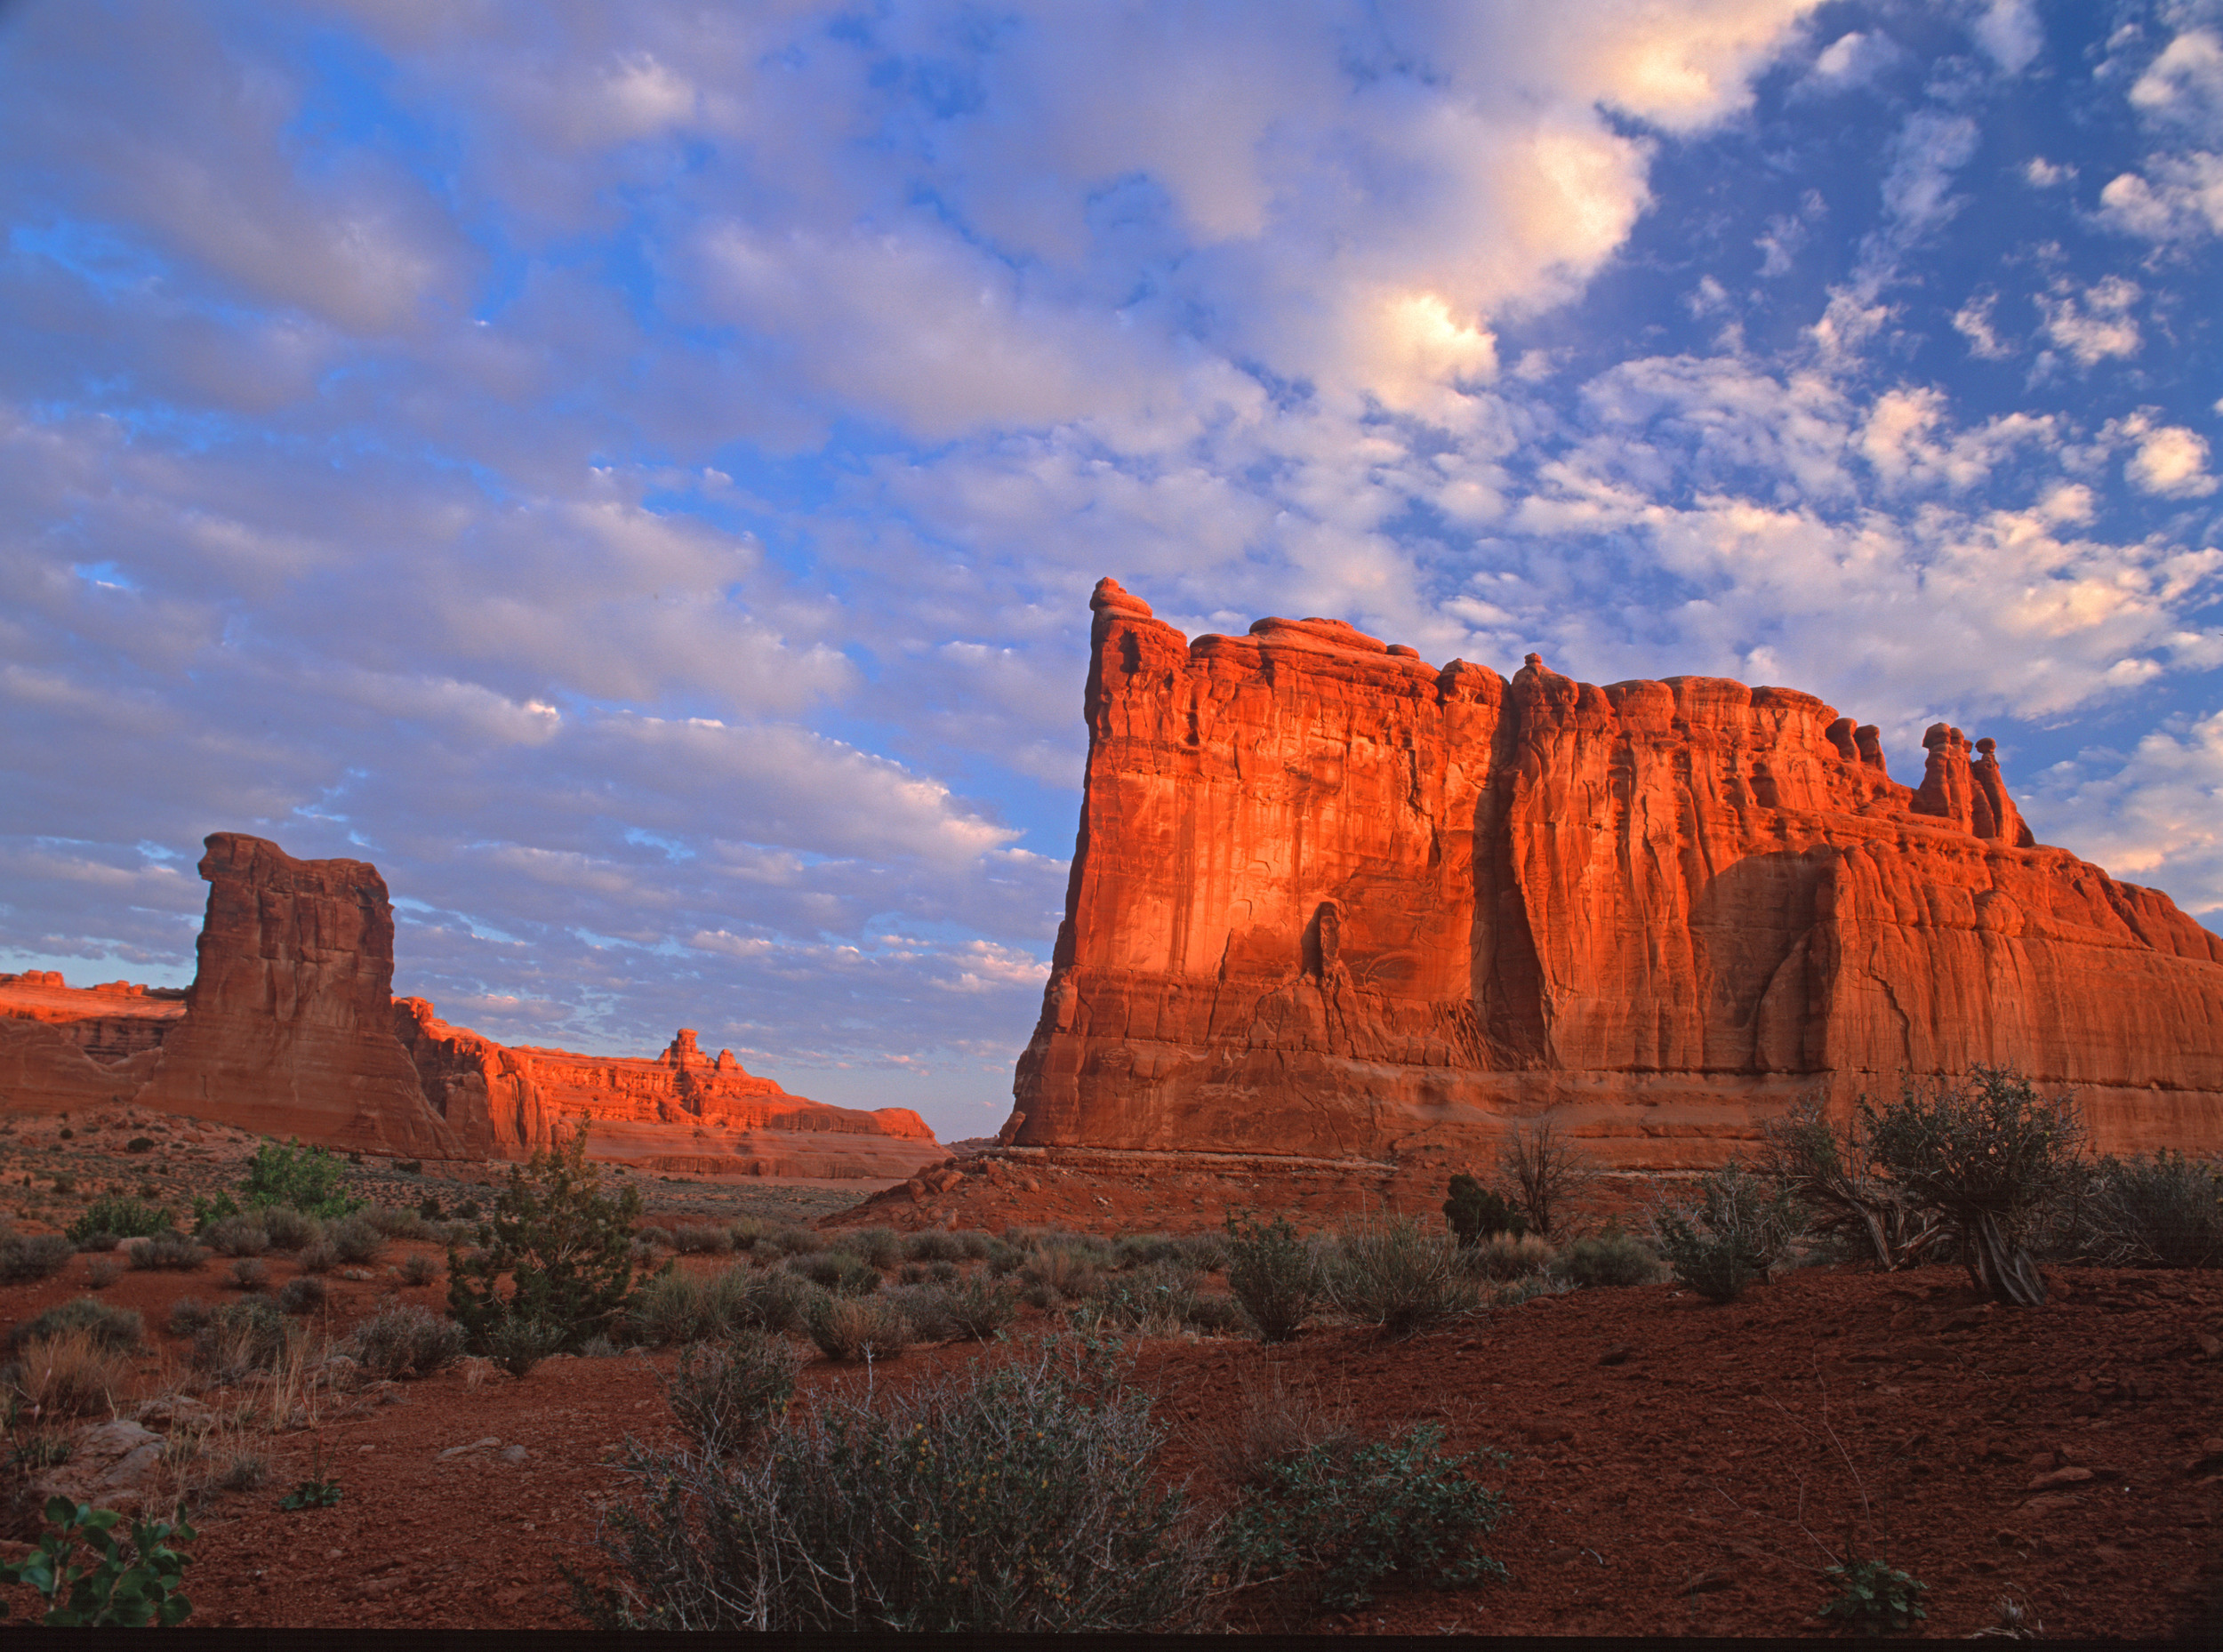 040517 Arches at Sunrise.jpg